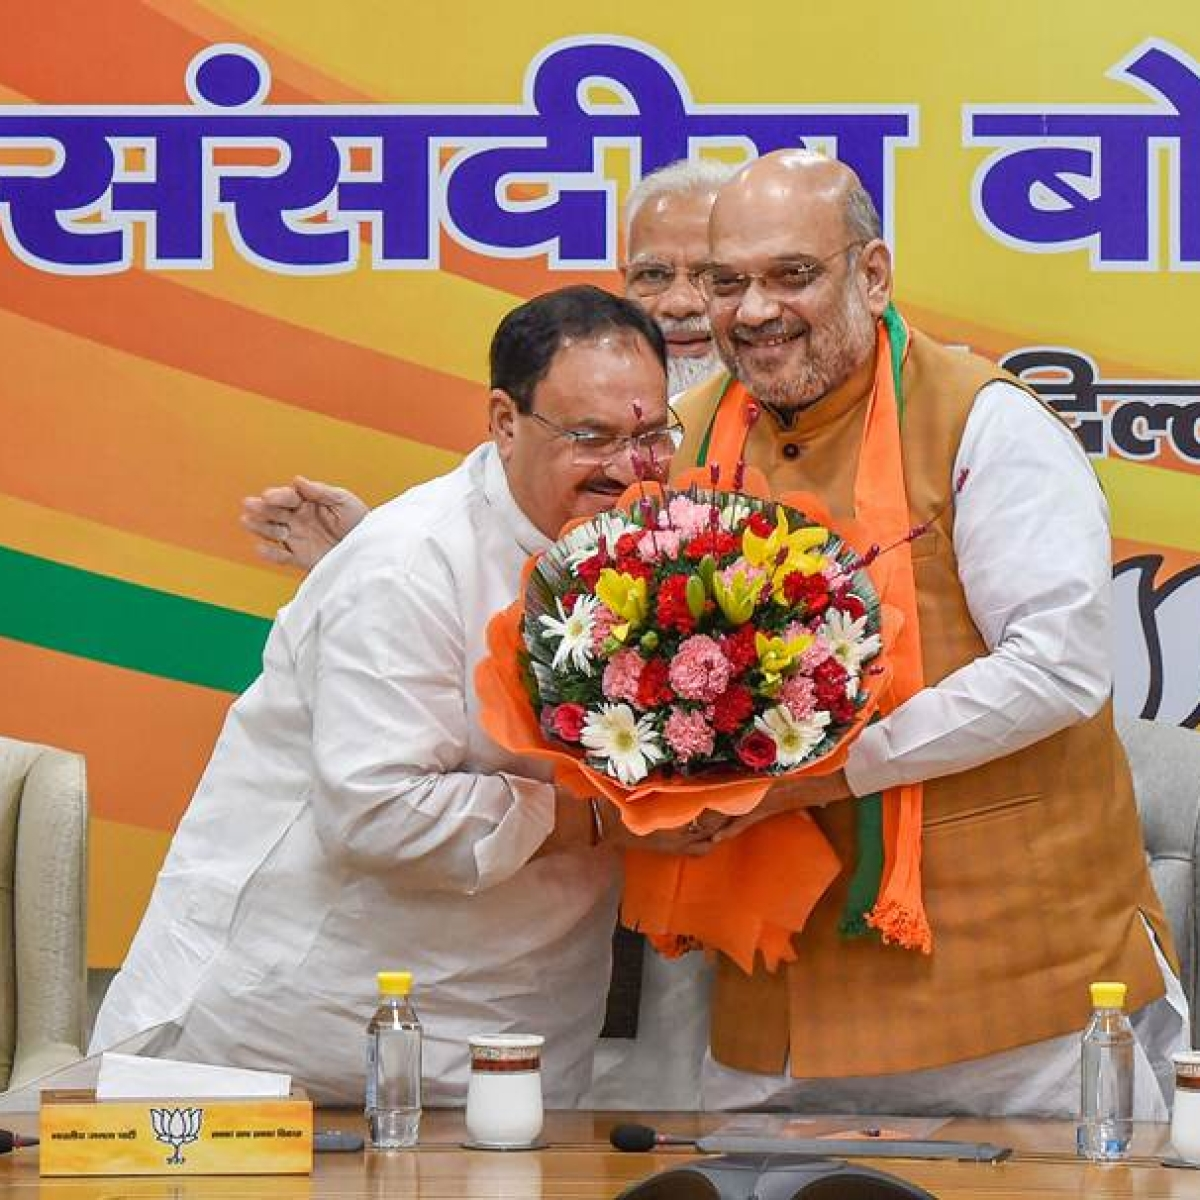 Delhi elections 2020: Amit Shah and JP Nadda to hold padyatra, meetings in every constituency